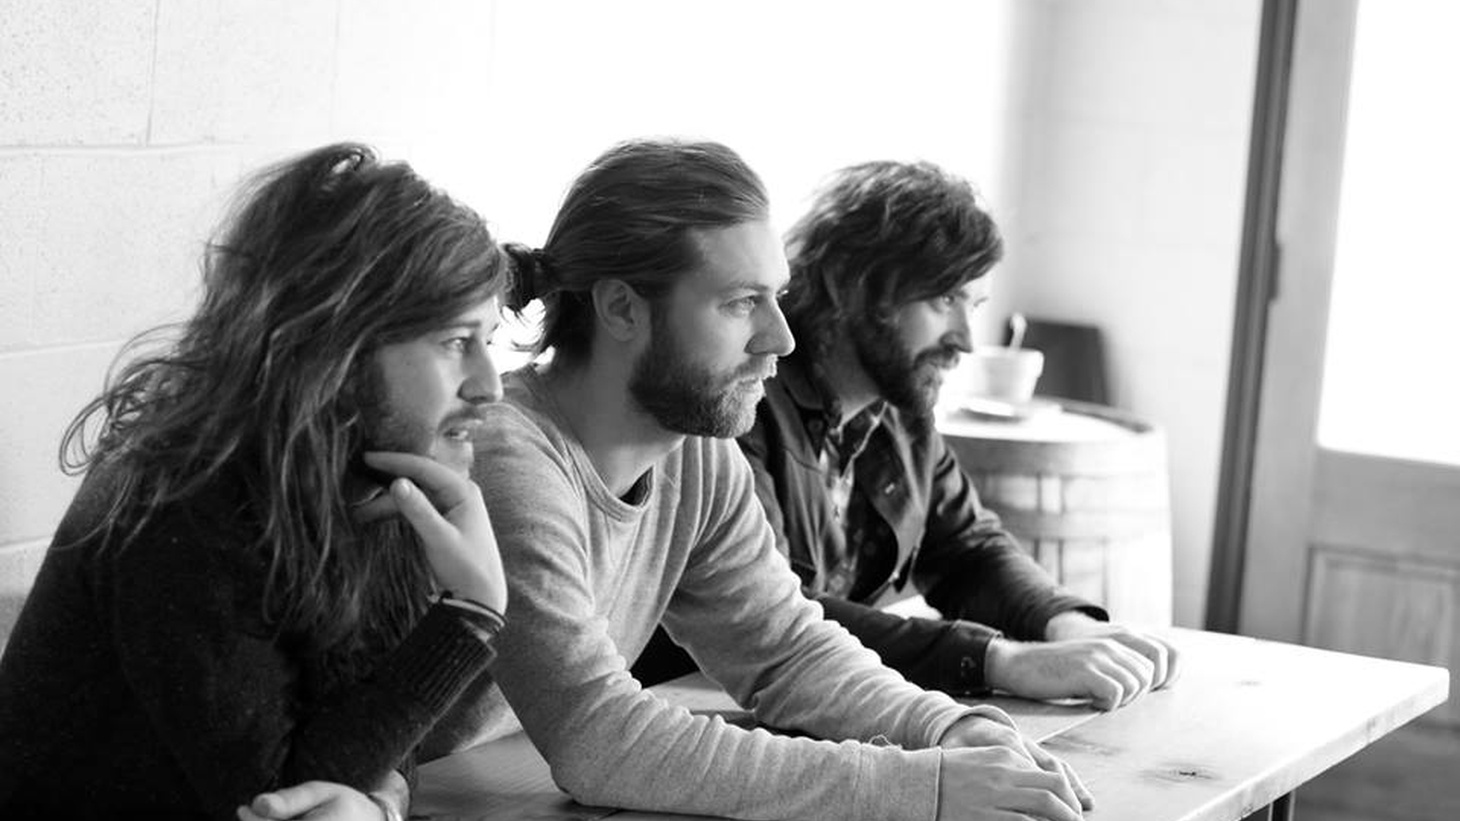 Dreamy and cinematic Other Lives are getting ready to release their third album.